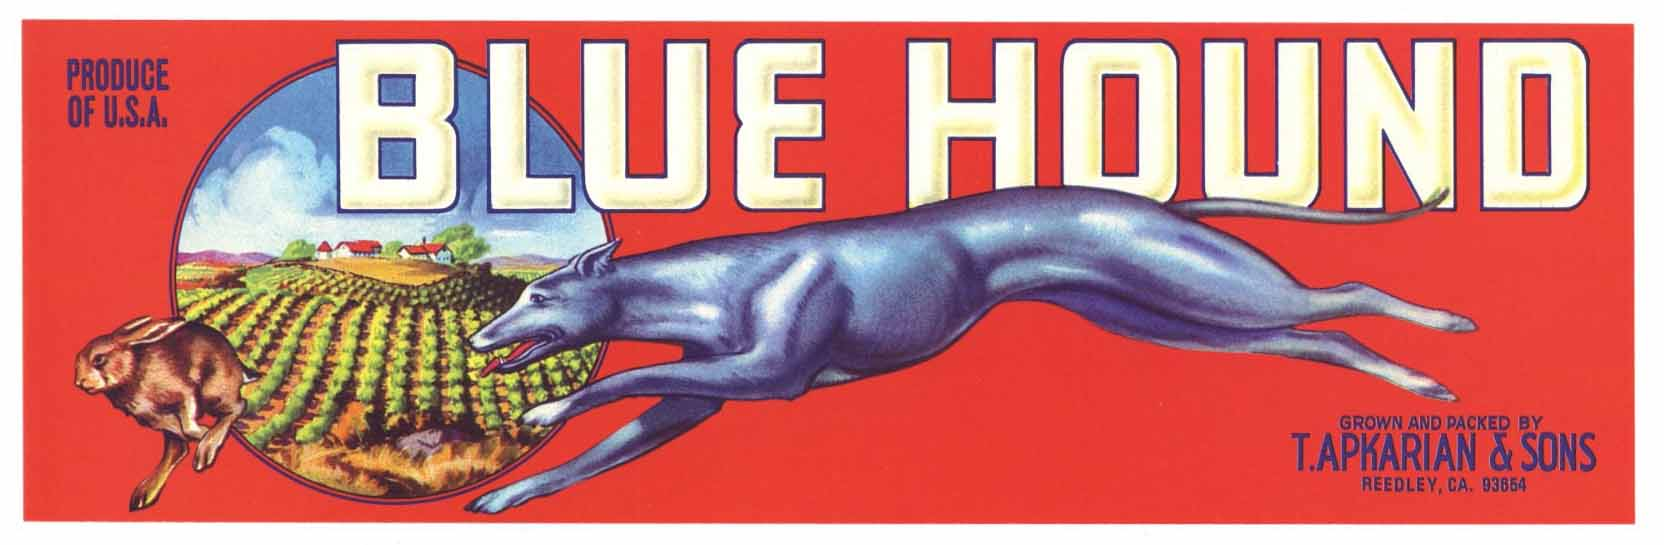 BLUE HOUND Brand Vintage Produce Crate Label, zipcode (LL163)